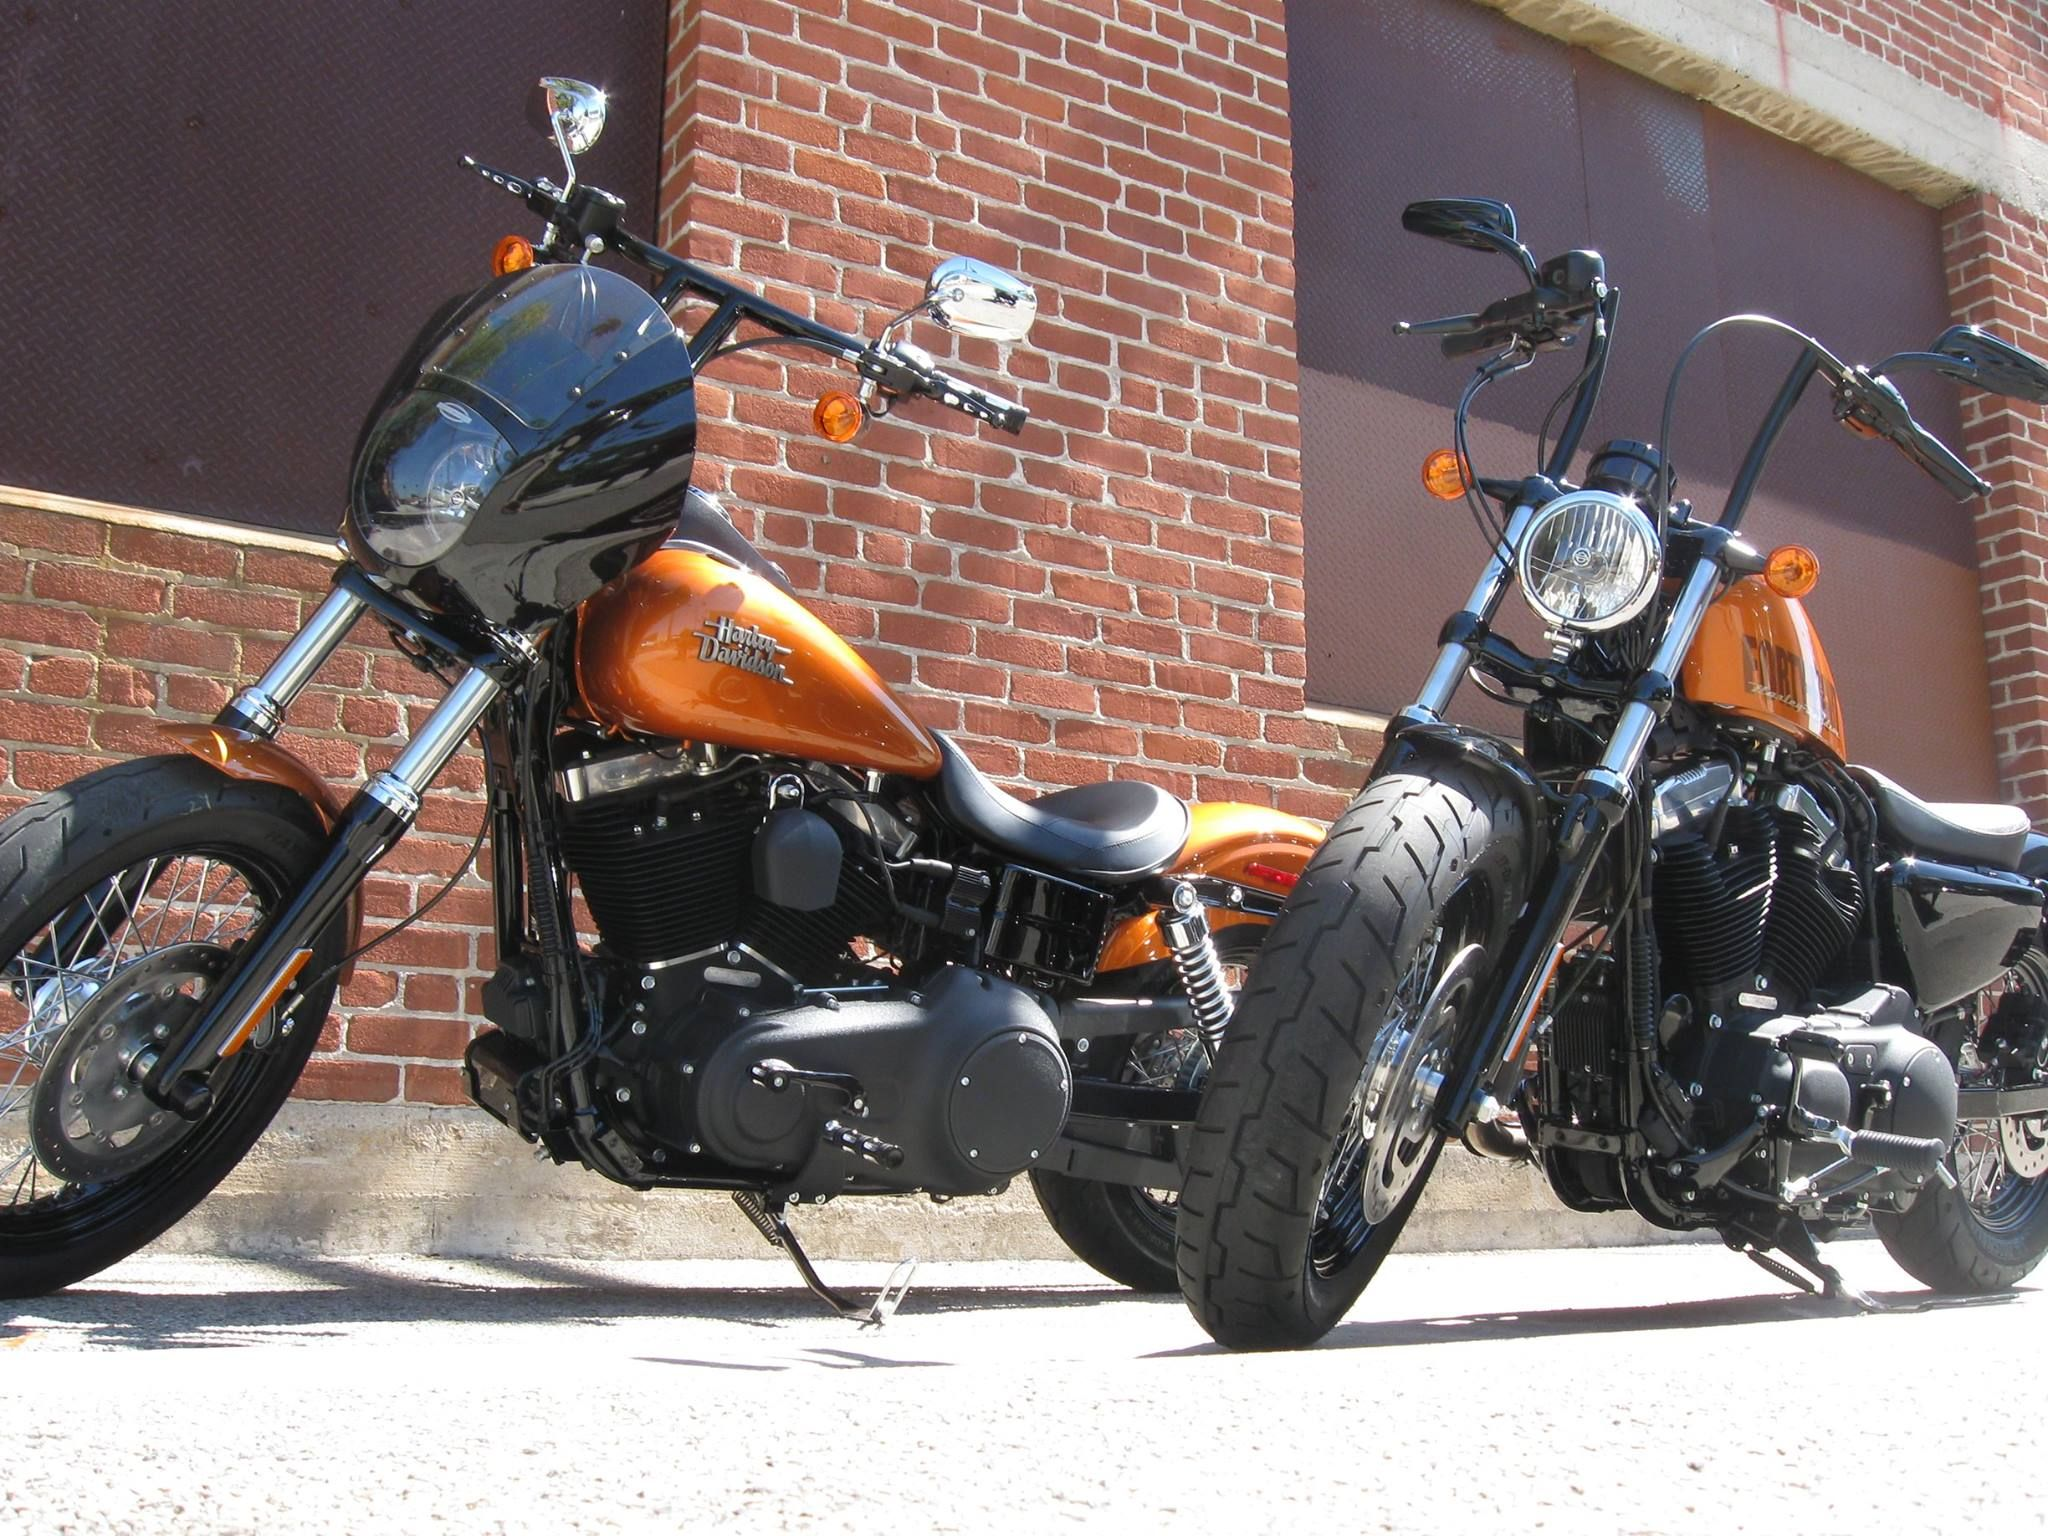 2015 forty eight sportster right fxdb street bob dyna left in the new amber whiskey color scheme